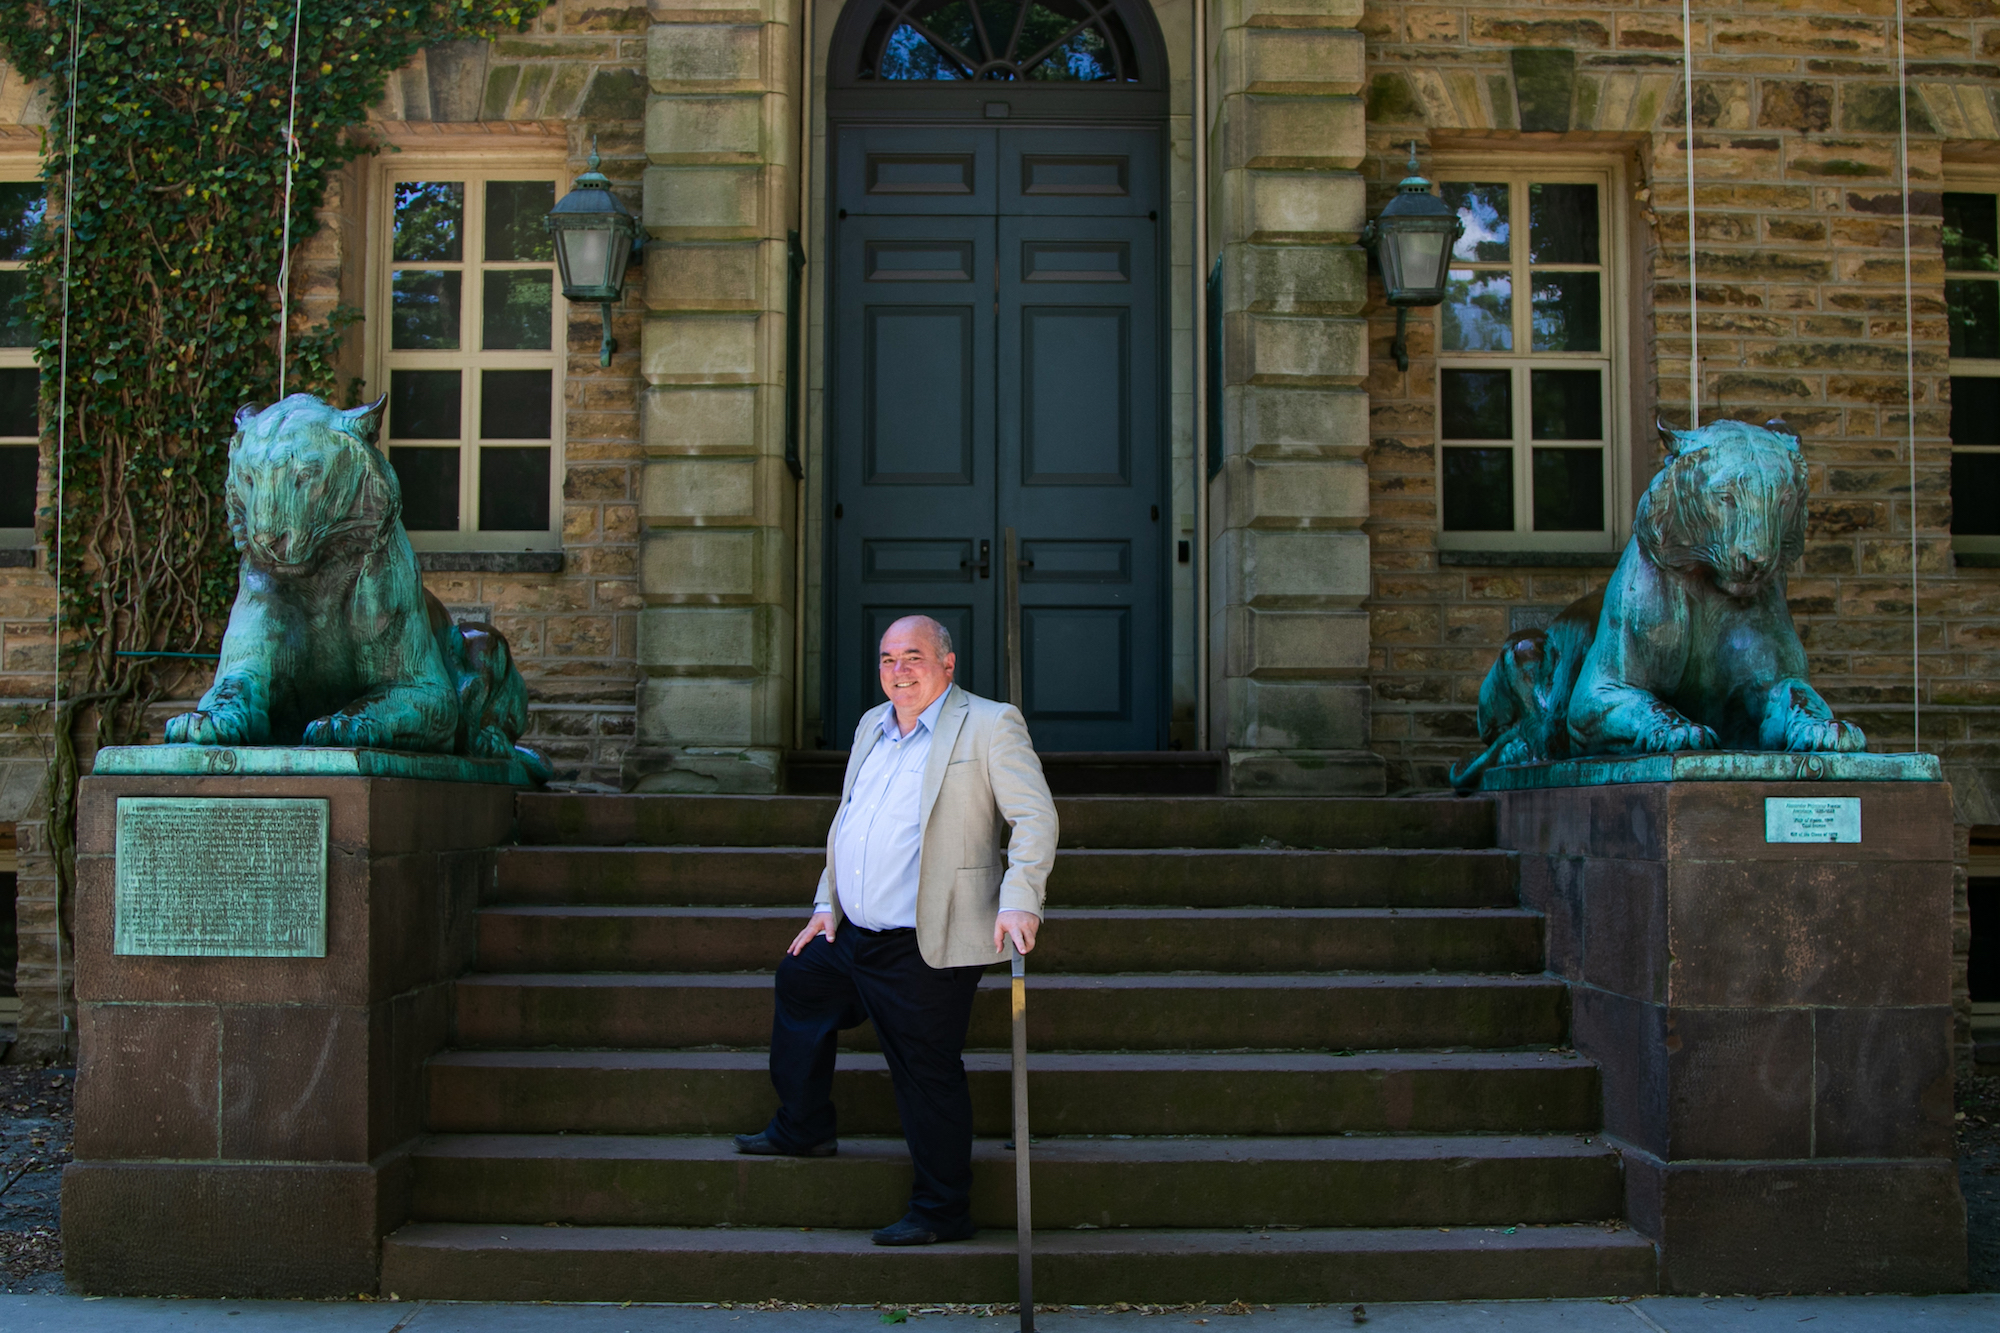 The founder of Network for Teaching Entrepreneurship (NFTE) Steve Mariotti stands on stairs in Princeton University in New Jersey on June 25, 2020. (Chung I Ho/The Epoch Times)